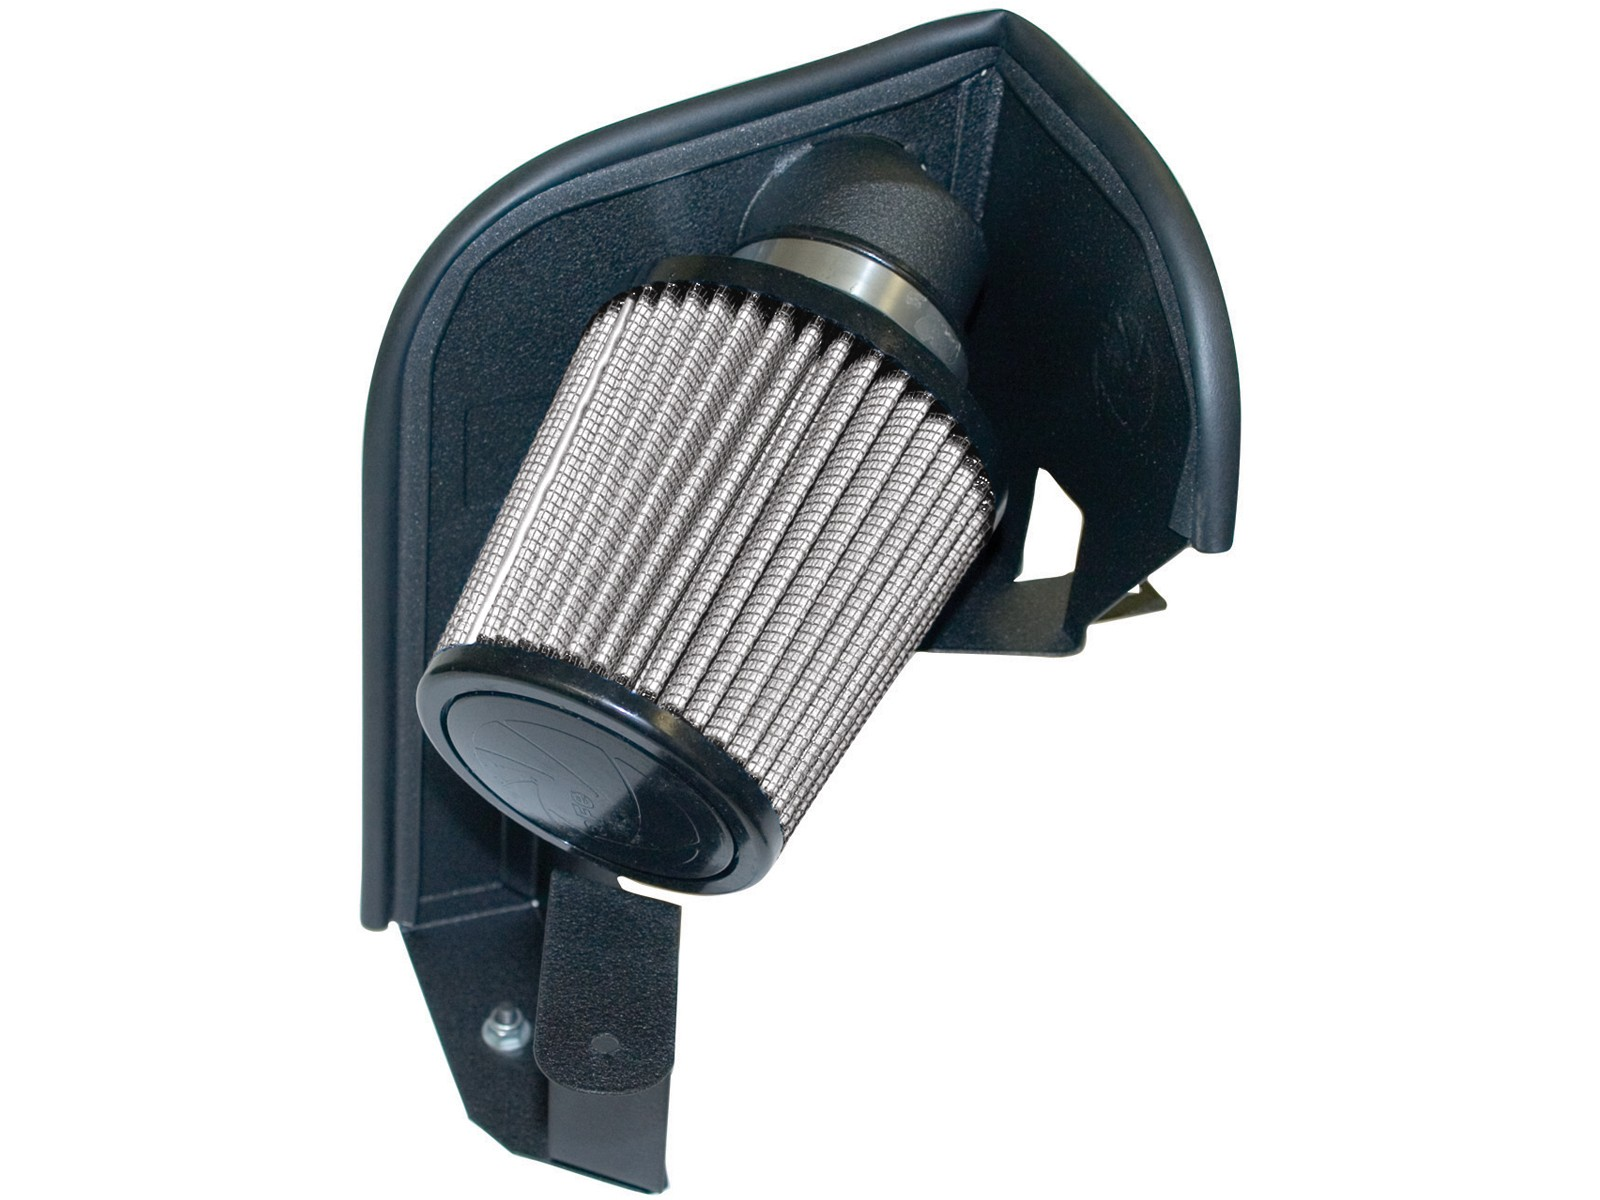 aFe POWER 51-11151 Magnum FORCE Stage-1 Pro DRY S Cold Air Intake System